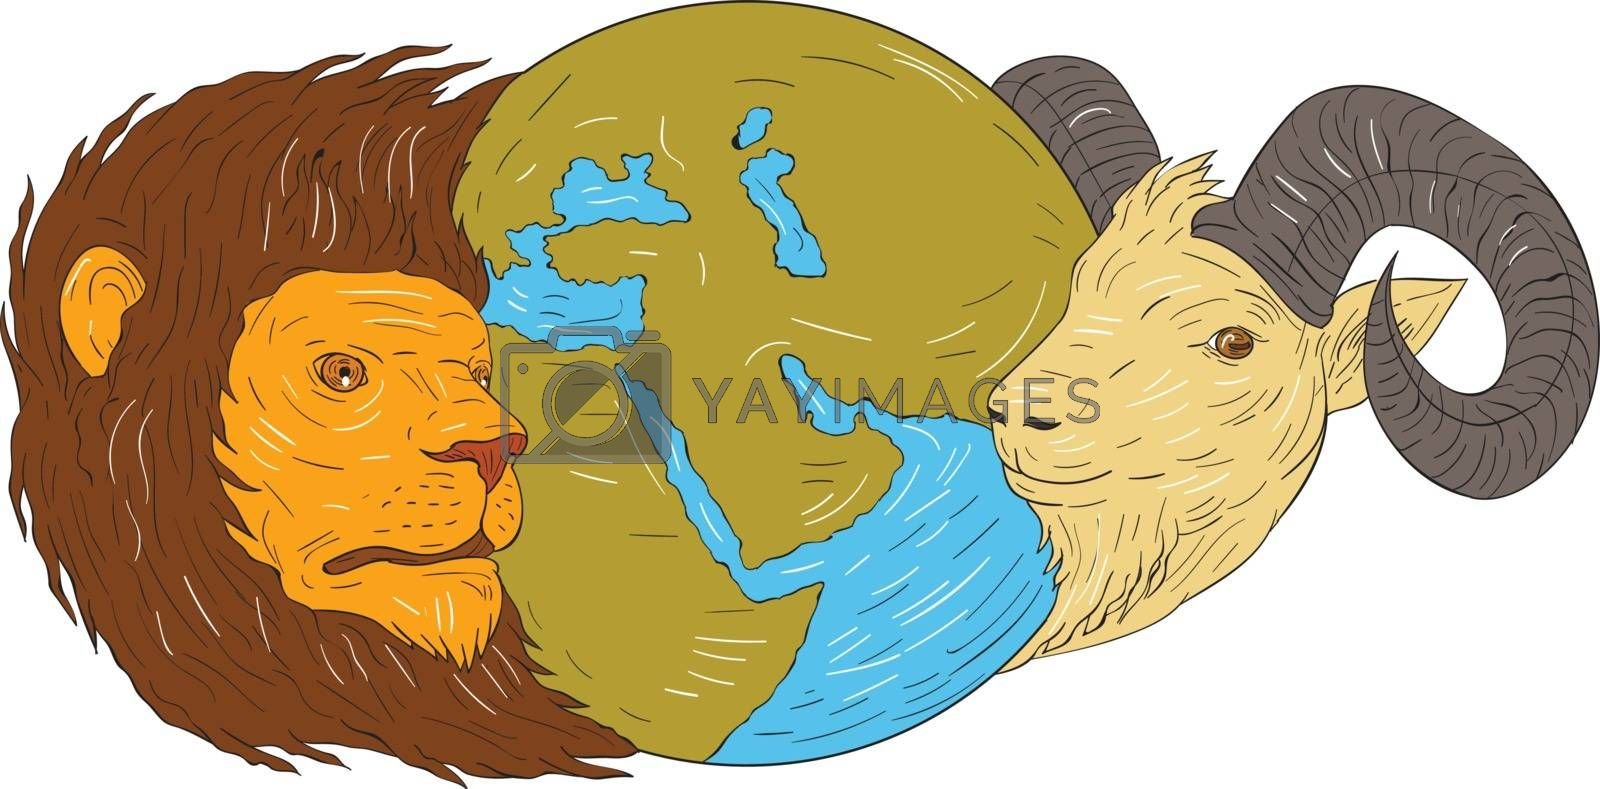 Drawing sketch style illustration of a map globe showing europe, middle east and africa  in between the heads of a lion and goat set on isolated white background.